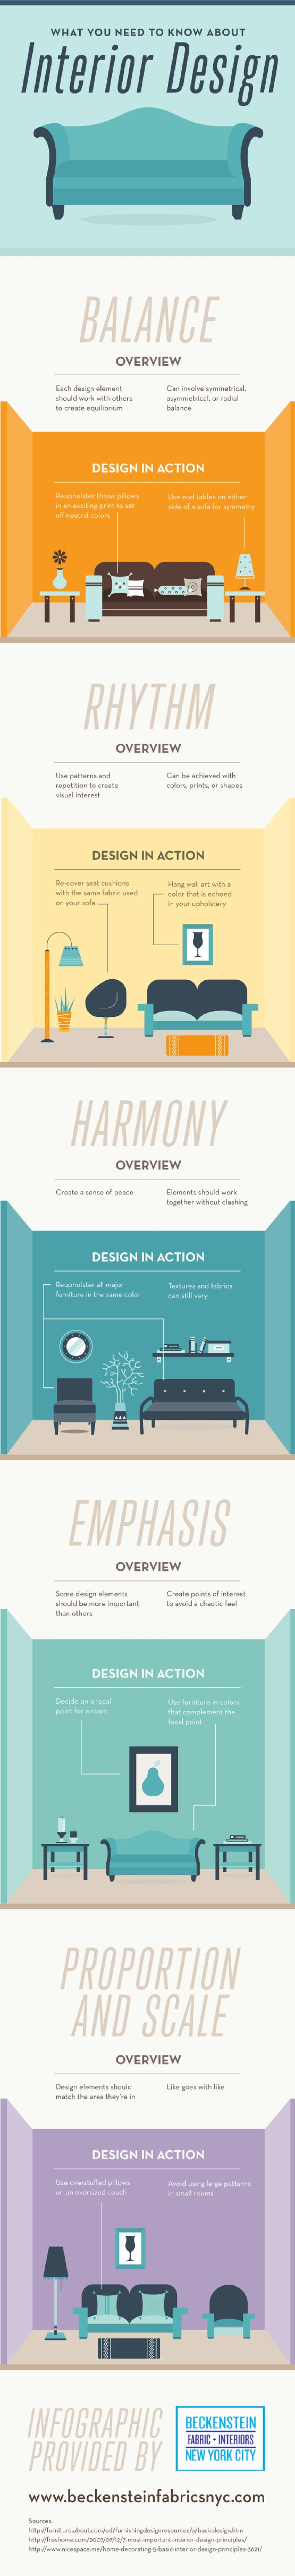 What You Need To Know About Interior Design - Tipsögraphic